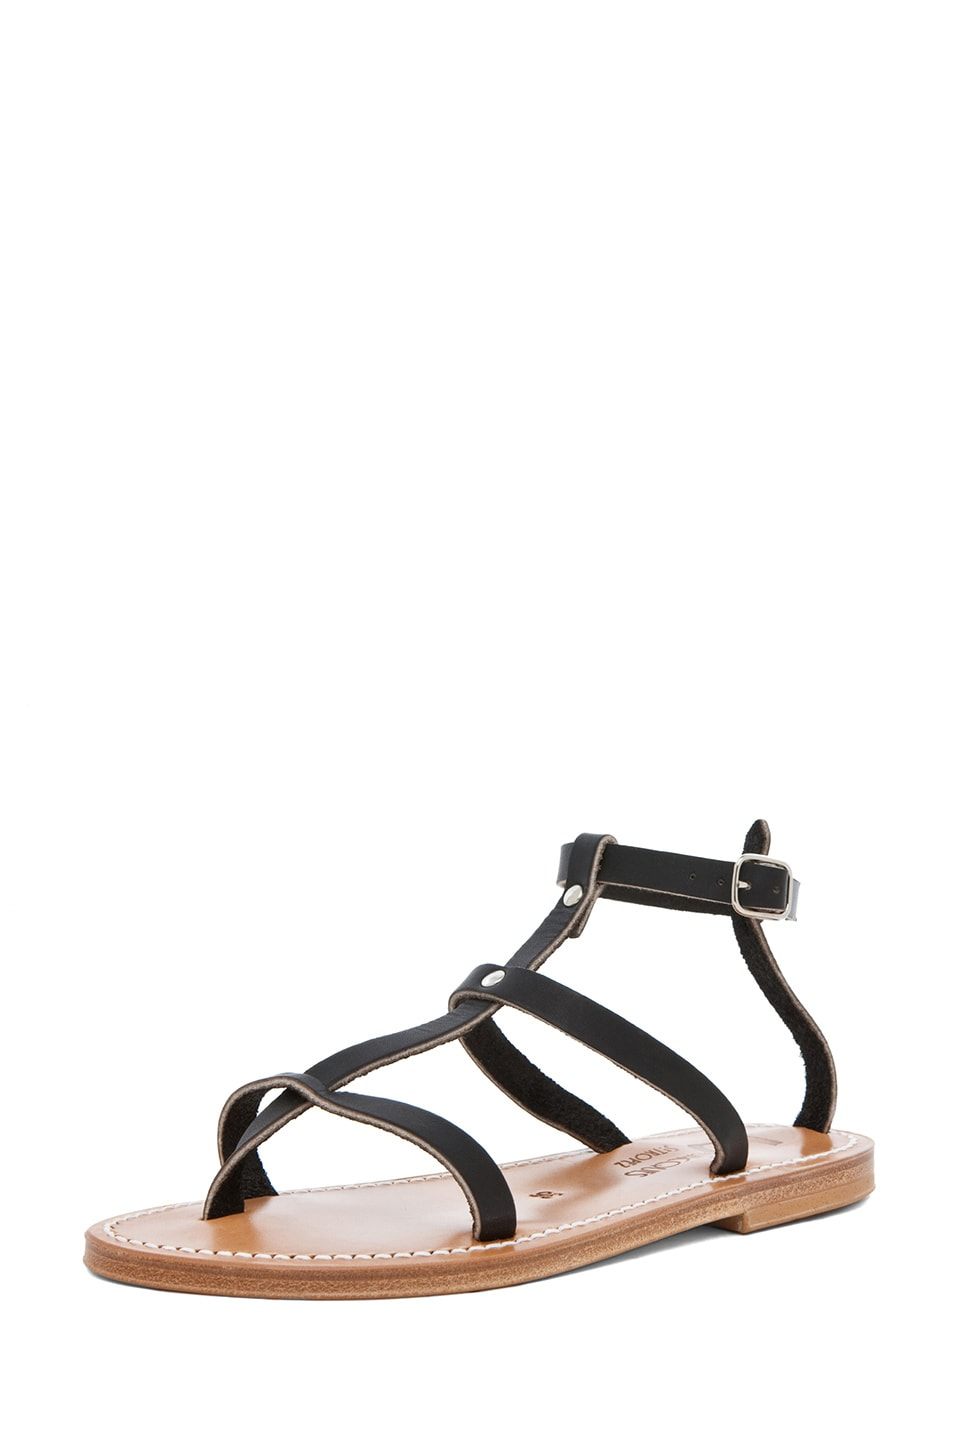 Image 2 of K Jacques Gina Gladiator Sandal in Black